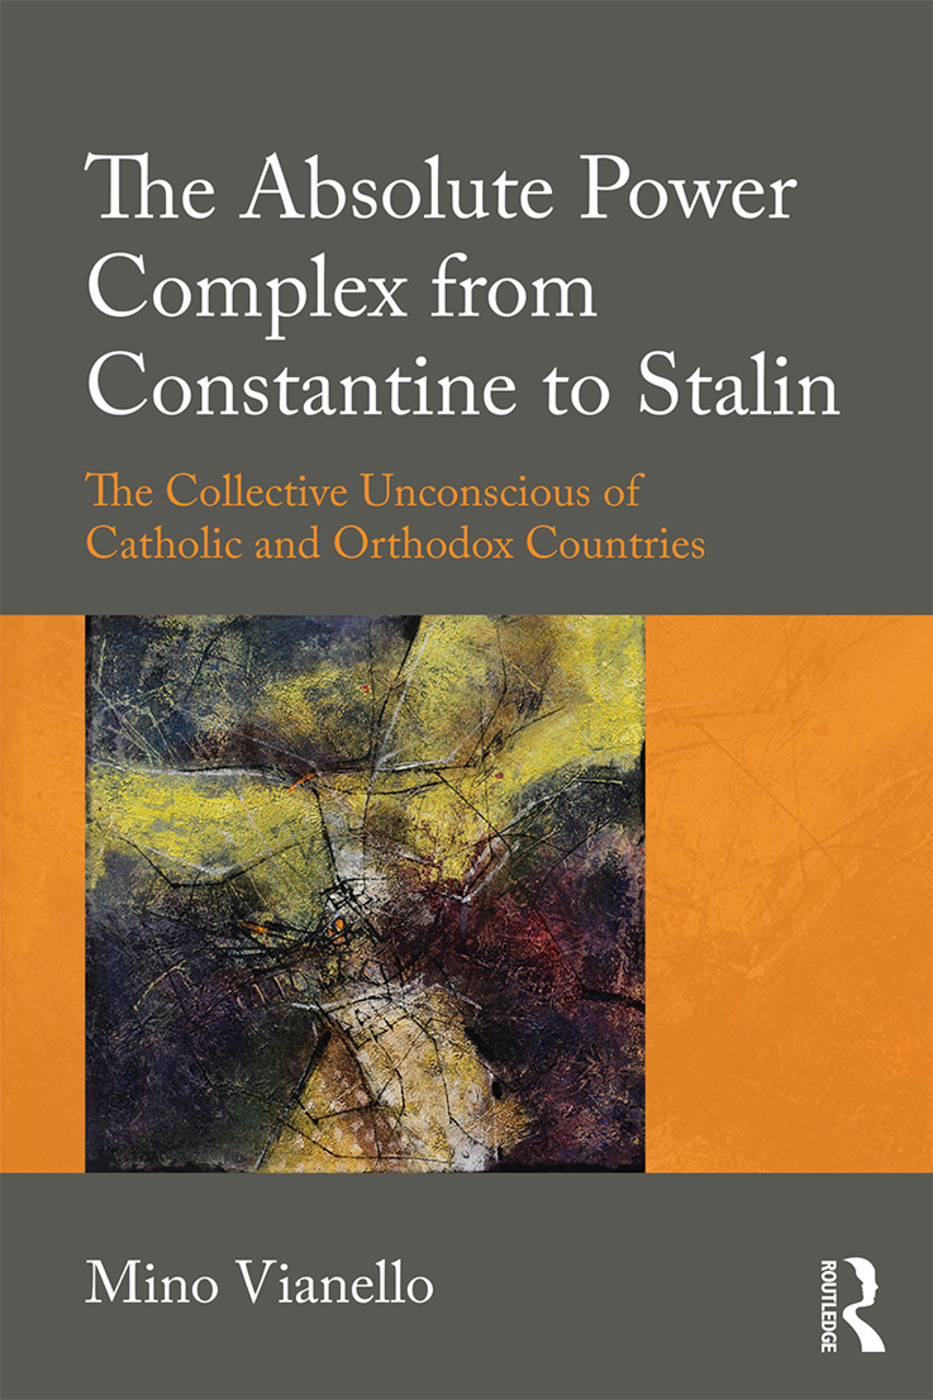 The Absolute Power Complex from Constantine to Stalin: The Collective Unconscious of Catholic and Orthodox Countries book cover